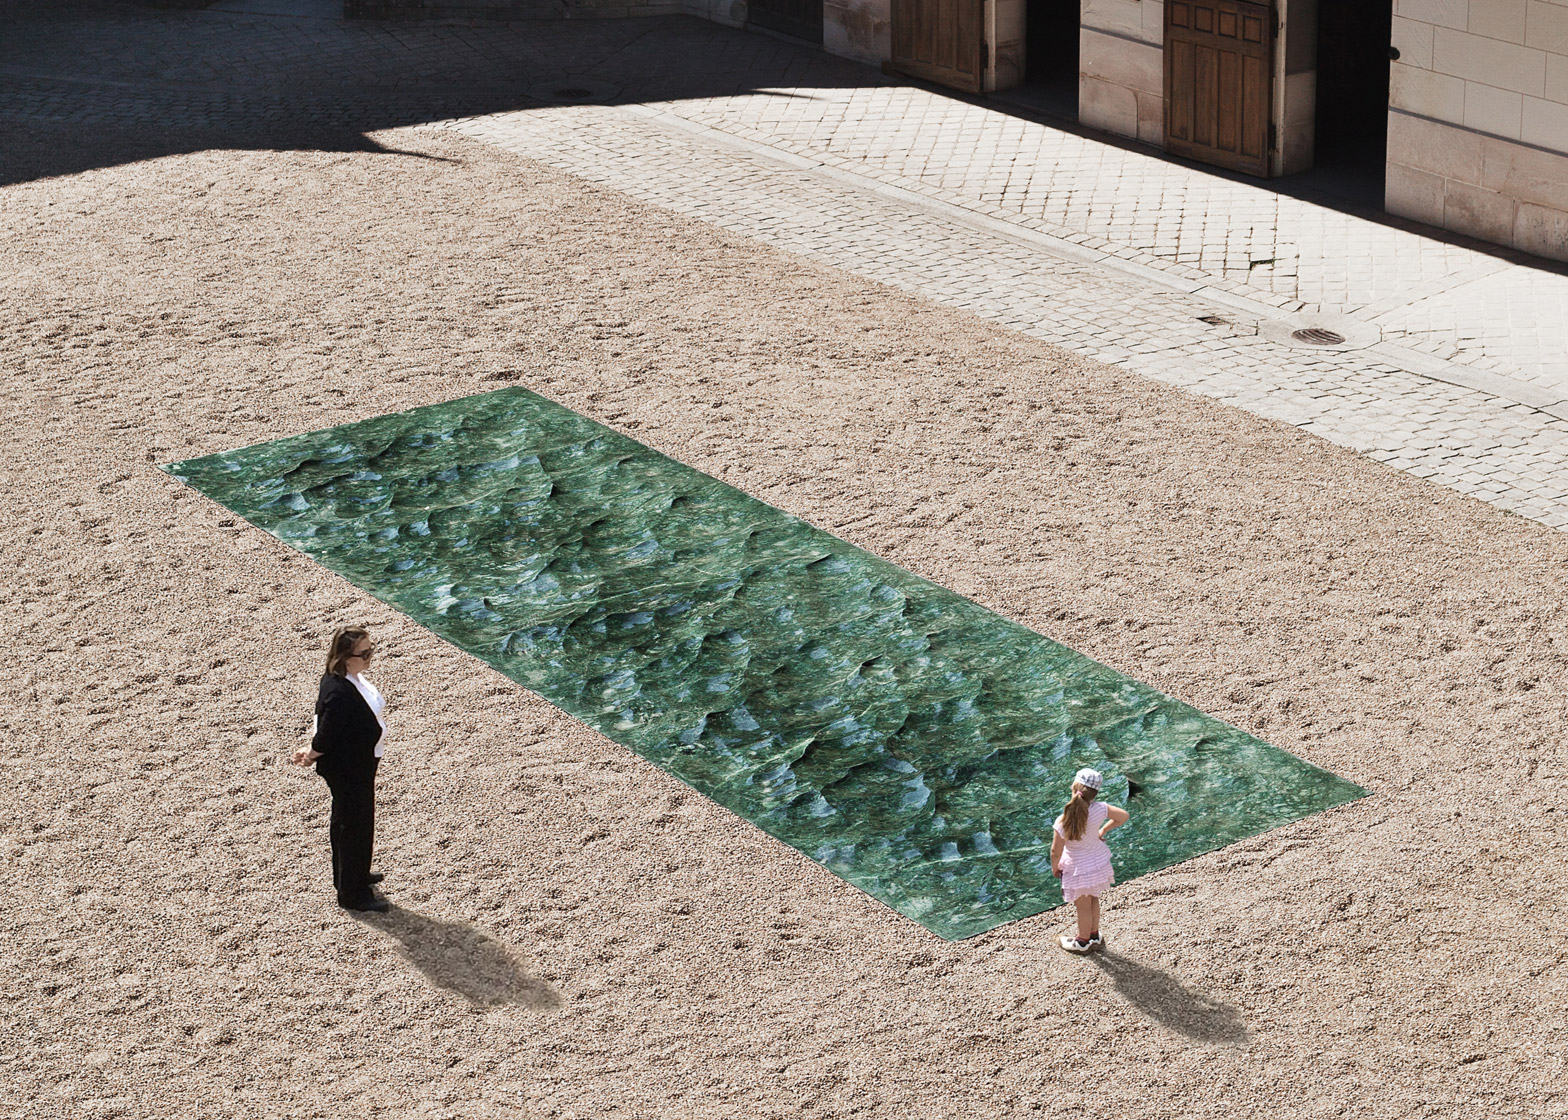 Liquid marble sculpture by Mathieu Lehanneur for the Petite Loire Installation at the International Garden Festival